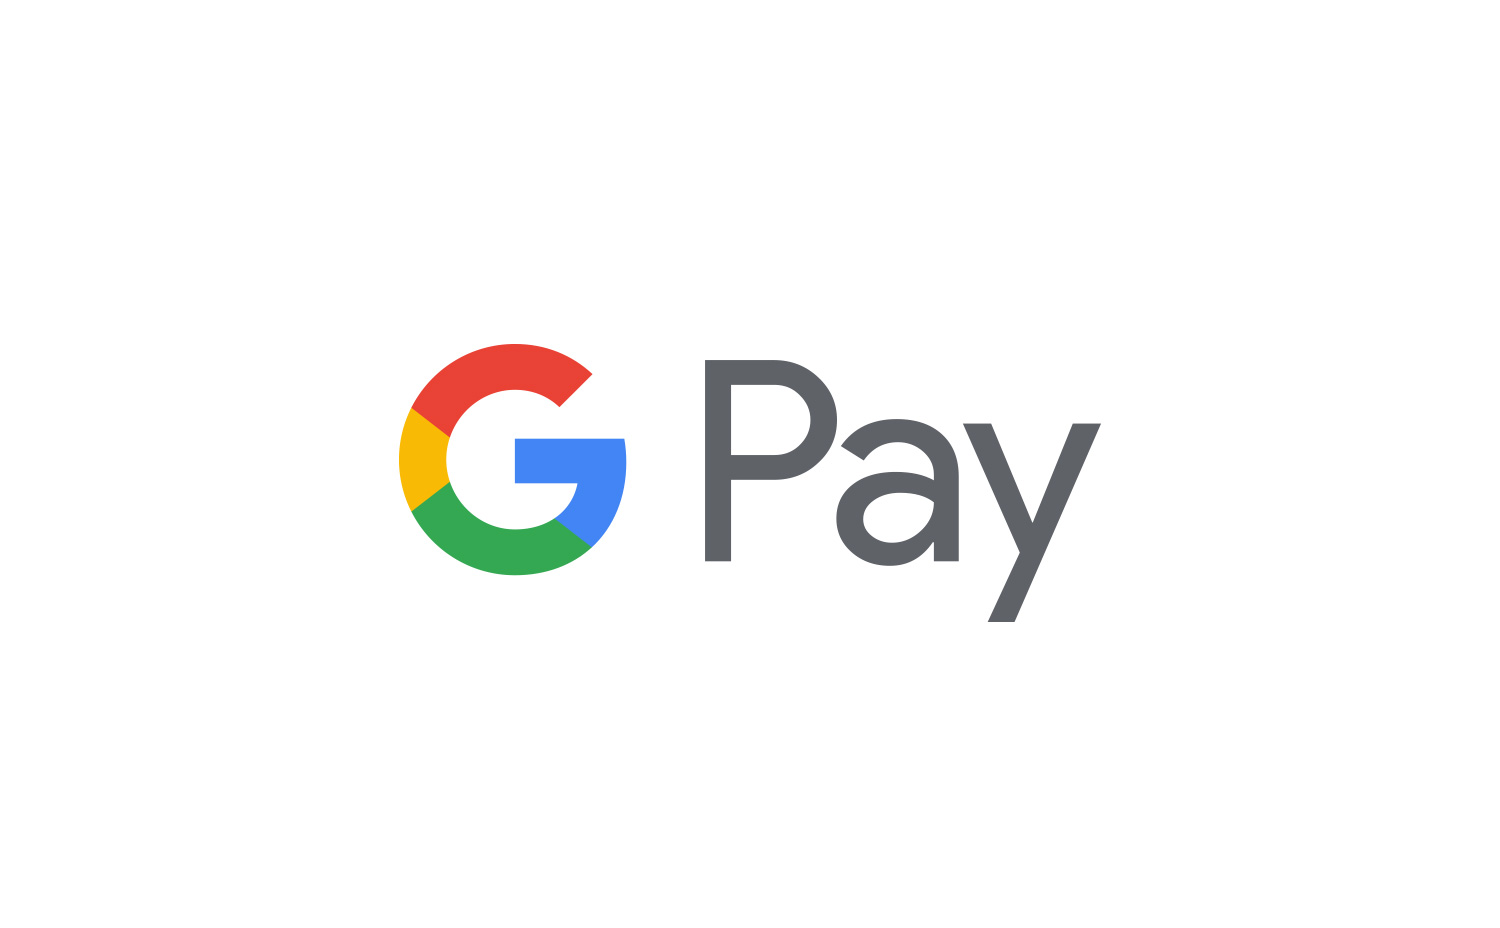 Google Pay  Concept, branding and UX for one, simple way to pay for things with Google.